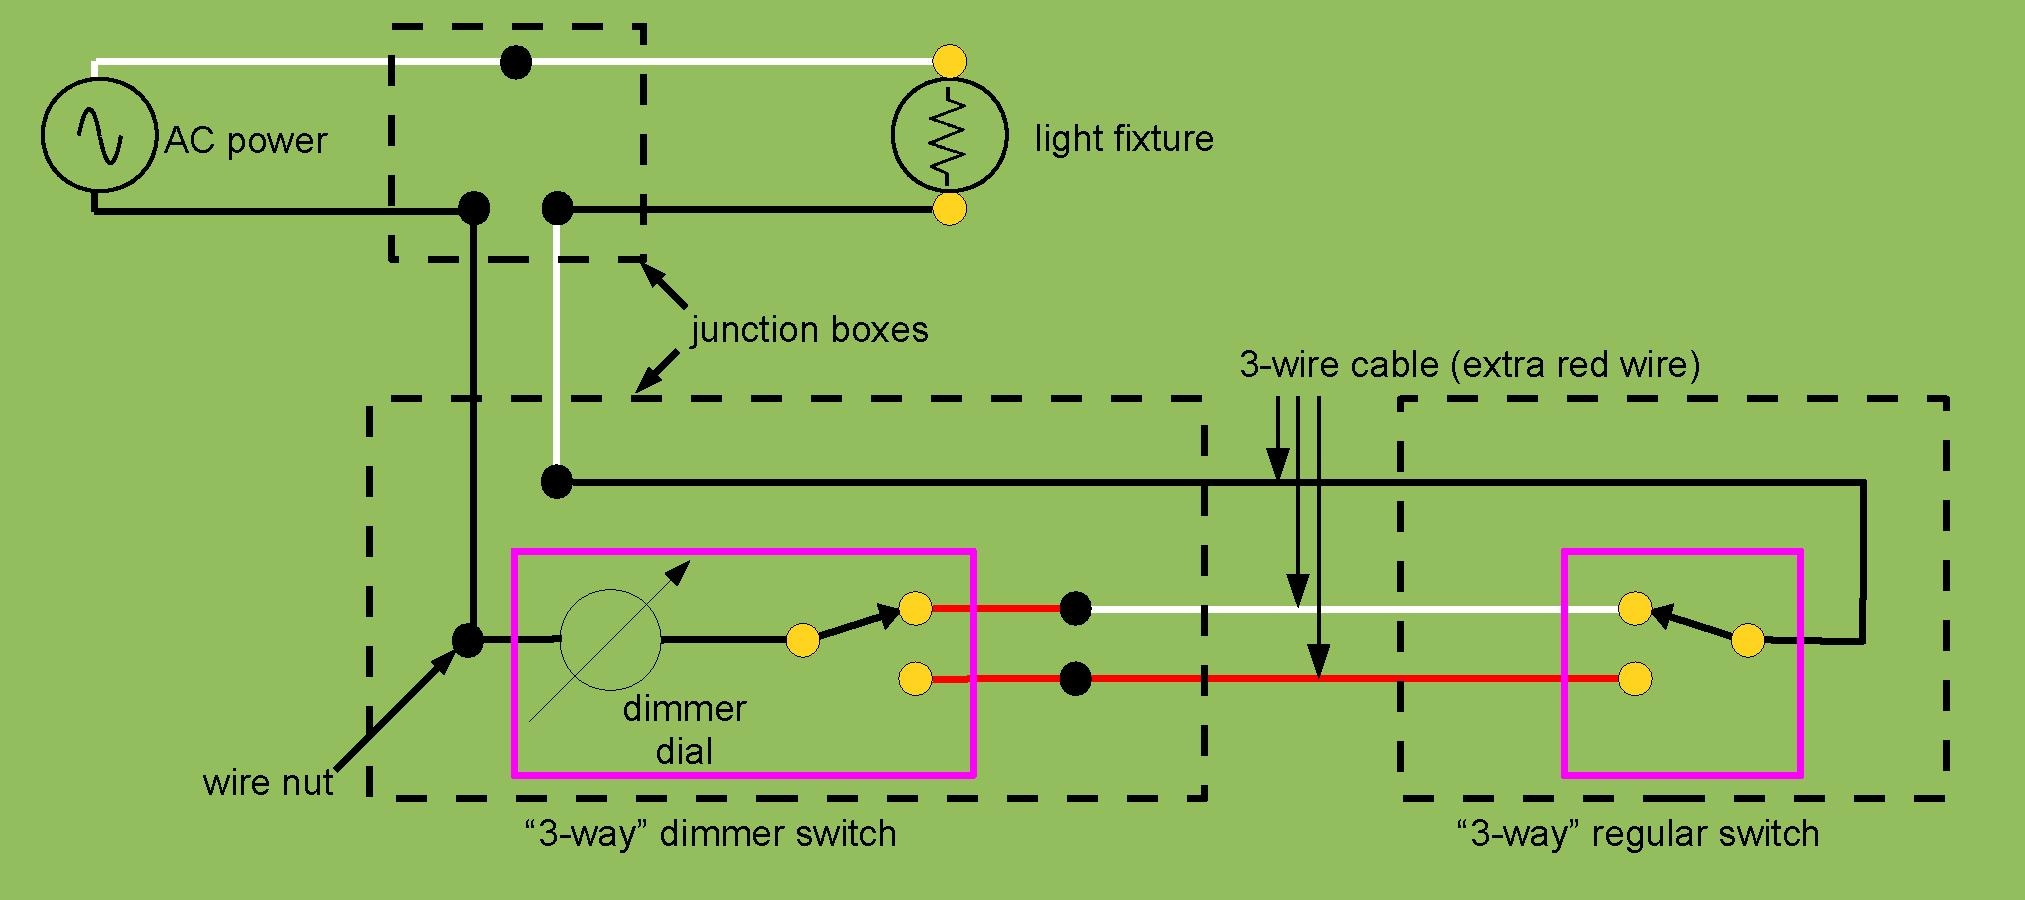 3 way wiring diagrams equus pro tach diagram file dimmer switch pdf wikimedia commons